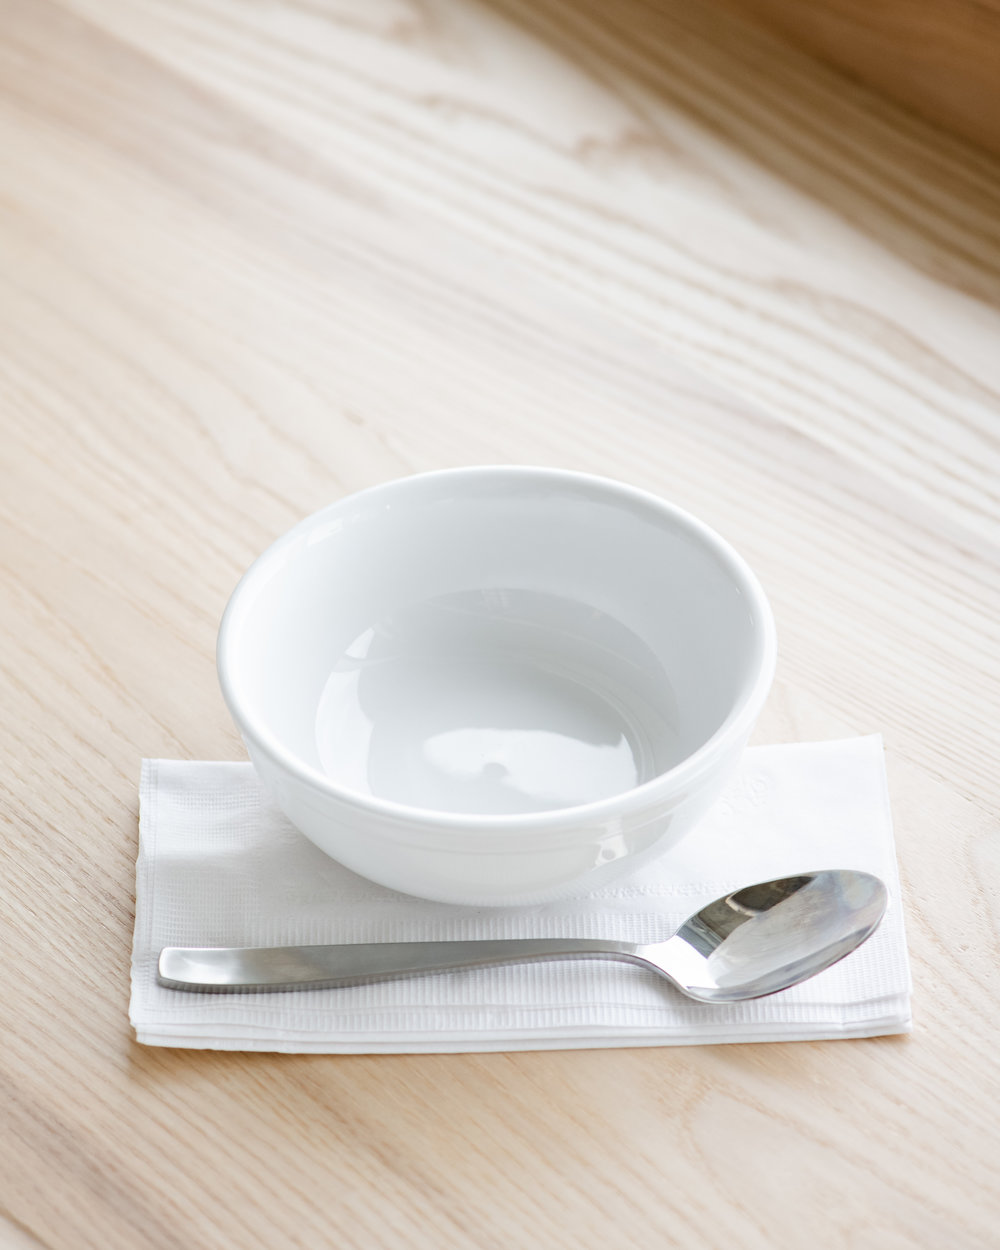 Grassroots Cafe-Empty Soup Bowl-3610.jpg